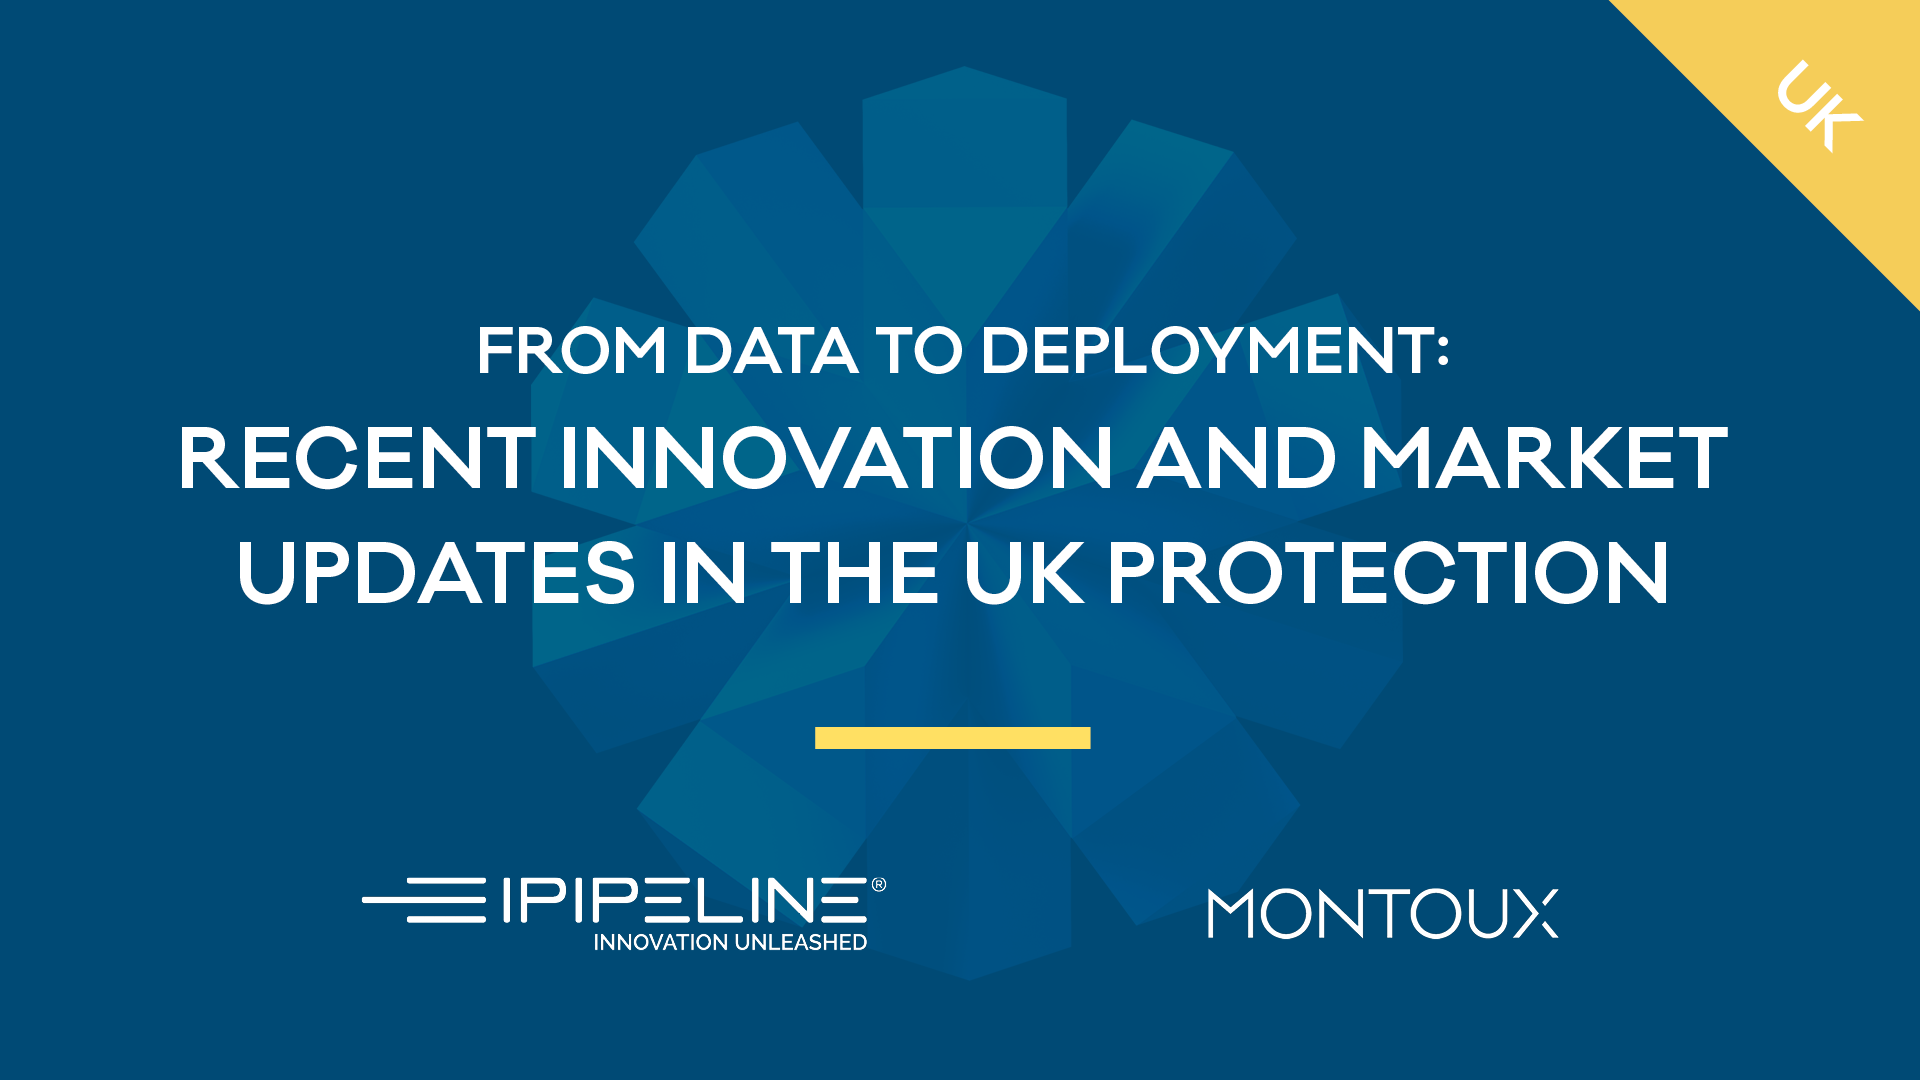 From data to deployment: Recent innovation and market updates in the UK Protection market